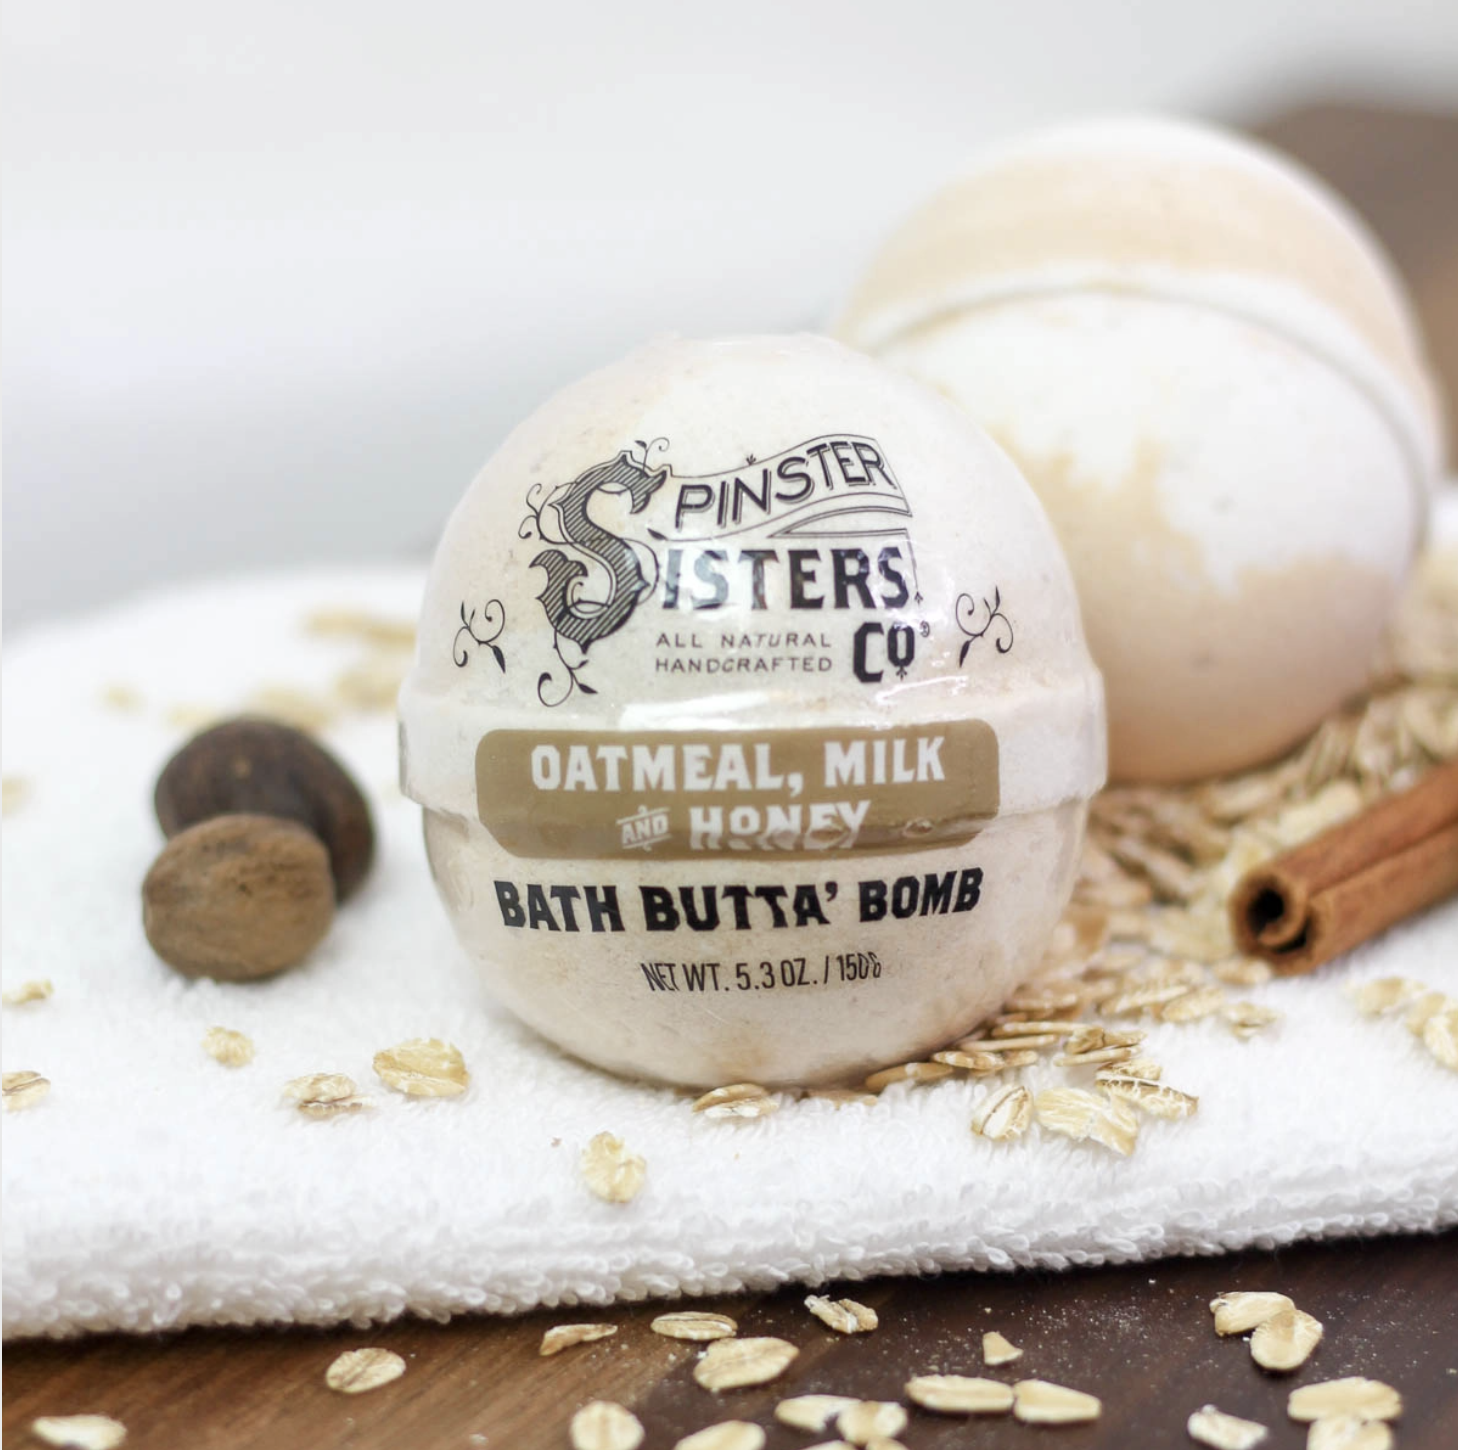 Spinster Sisters Co. SS Co. Bath Butta' Bomb